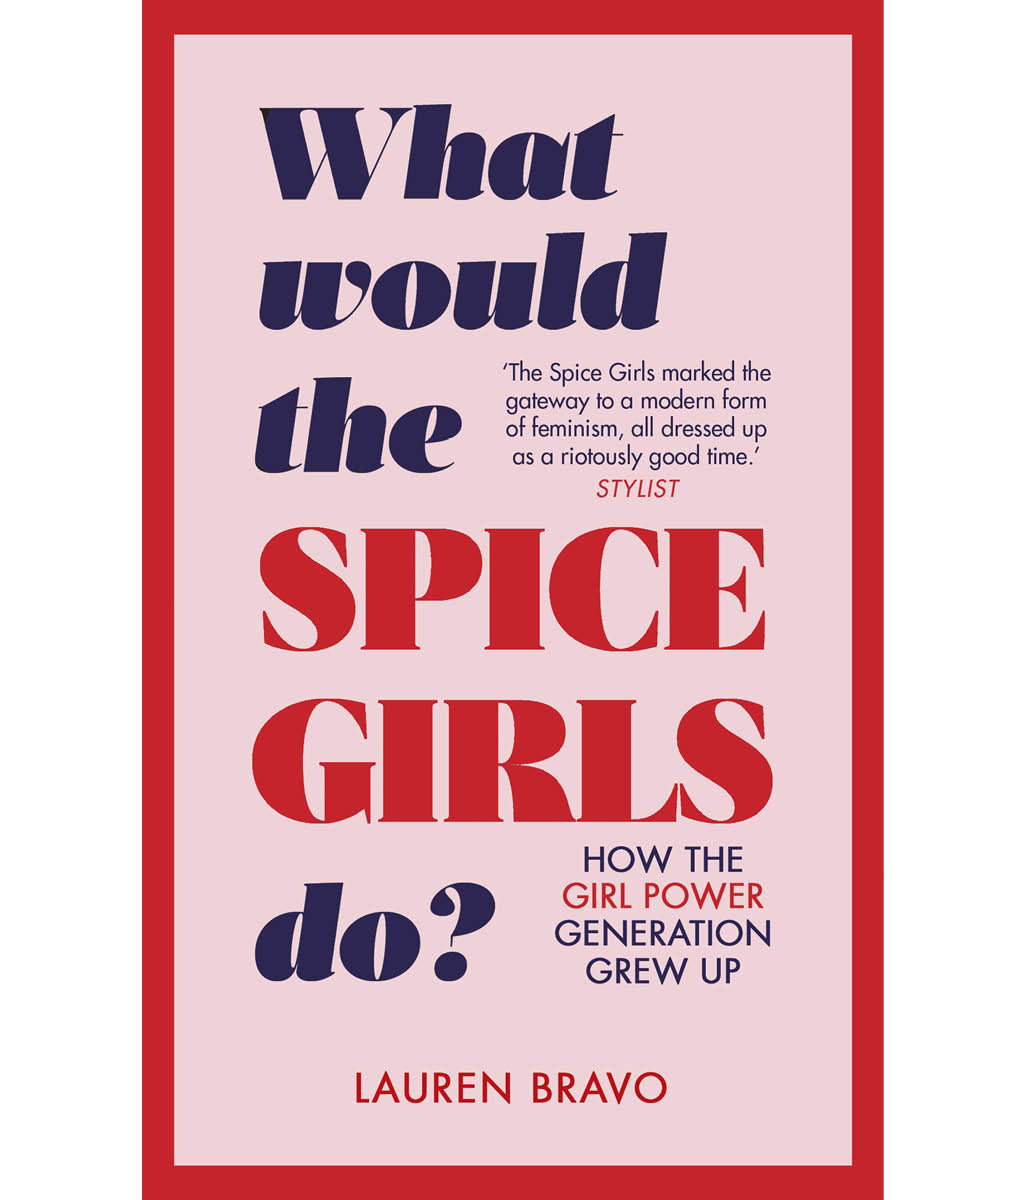 What Would the Spice Girls Do?: How the Girl Power Generation Grew Up by Lauren Bravo